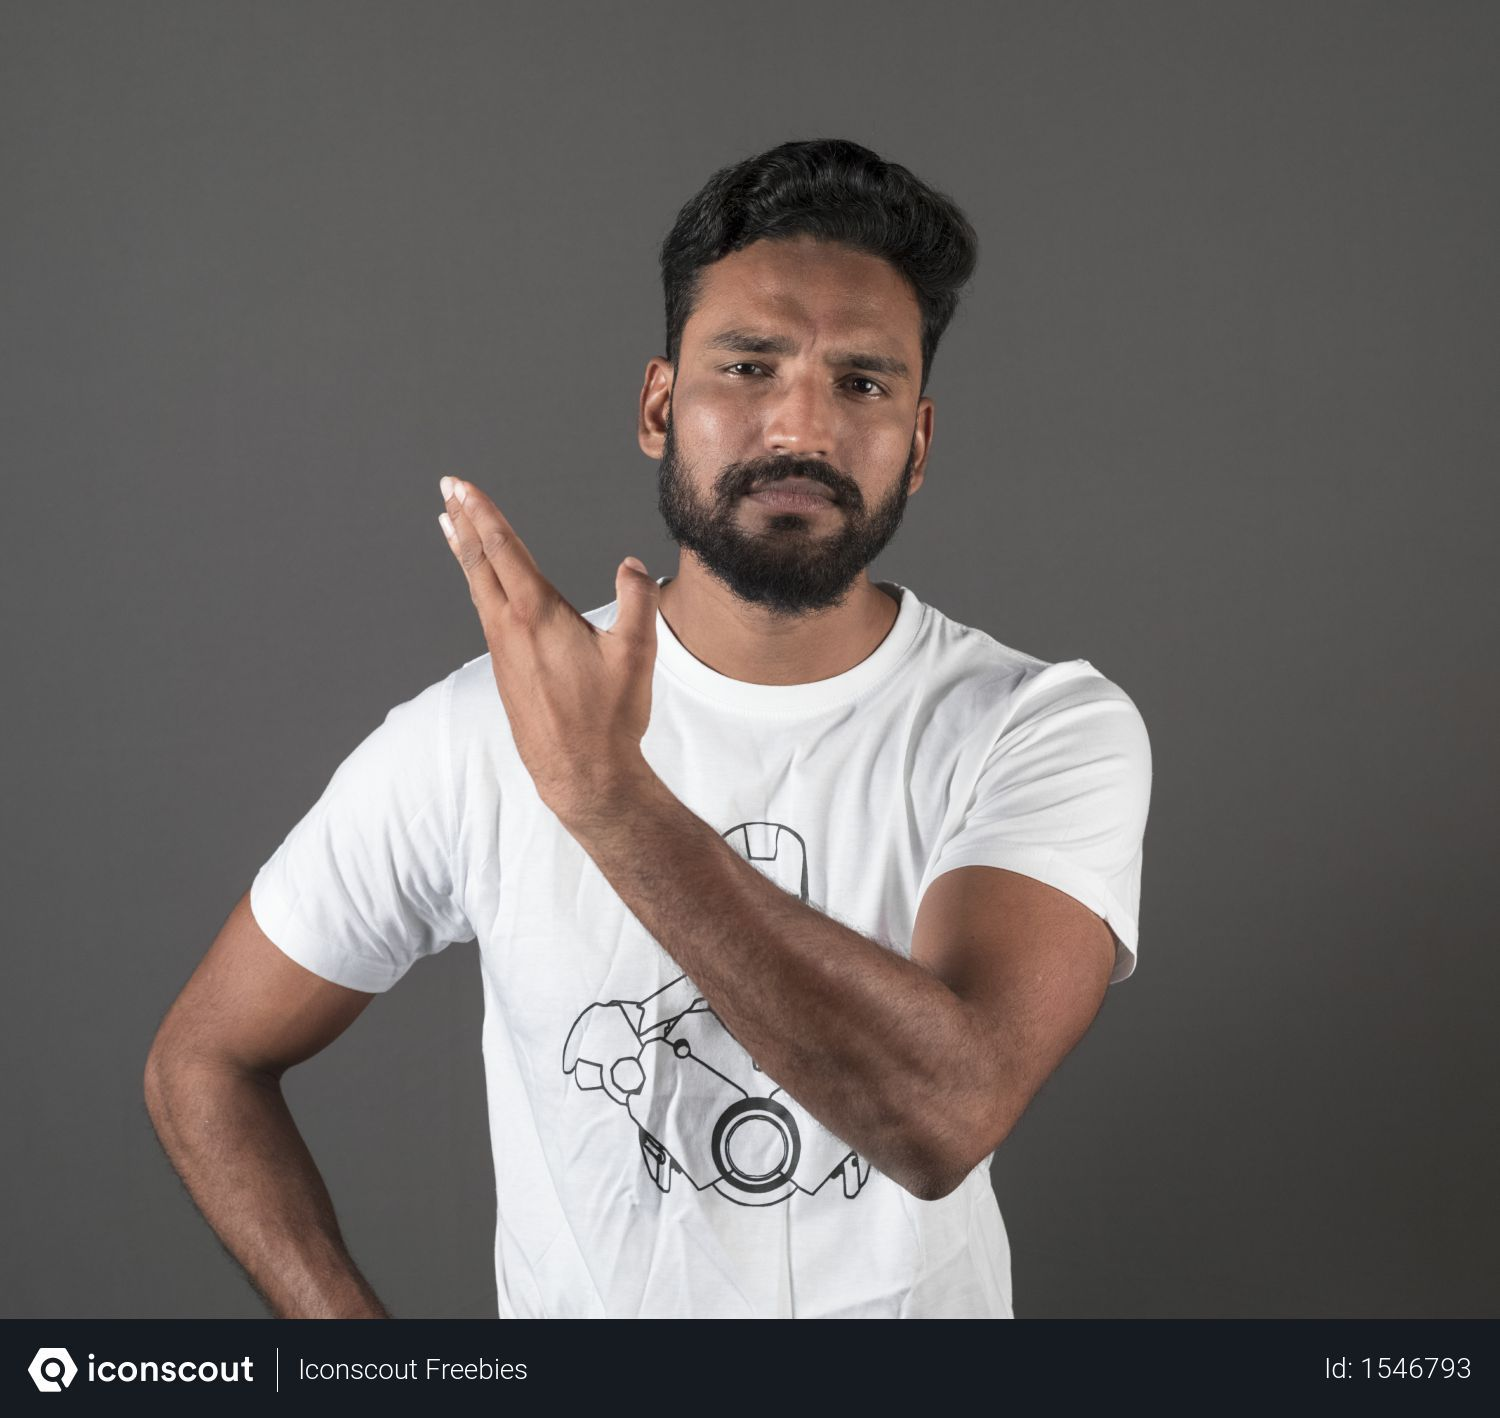 Free Indian Young Man With Angry Expression Photo Download In Png Jpg Format In 2021 Angry Expression Expressions Man